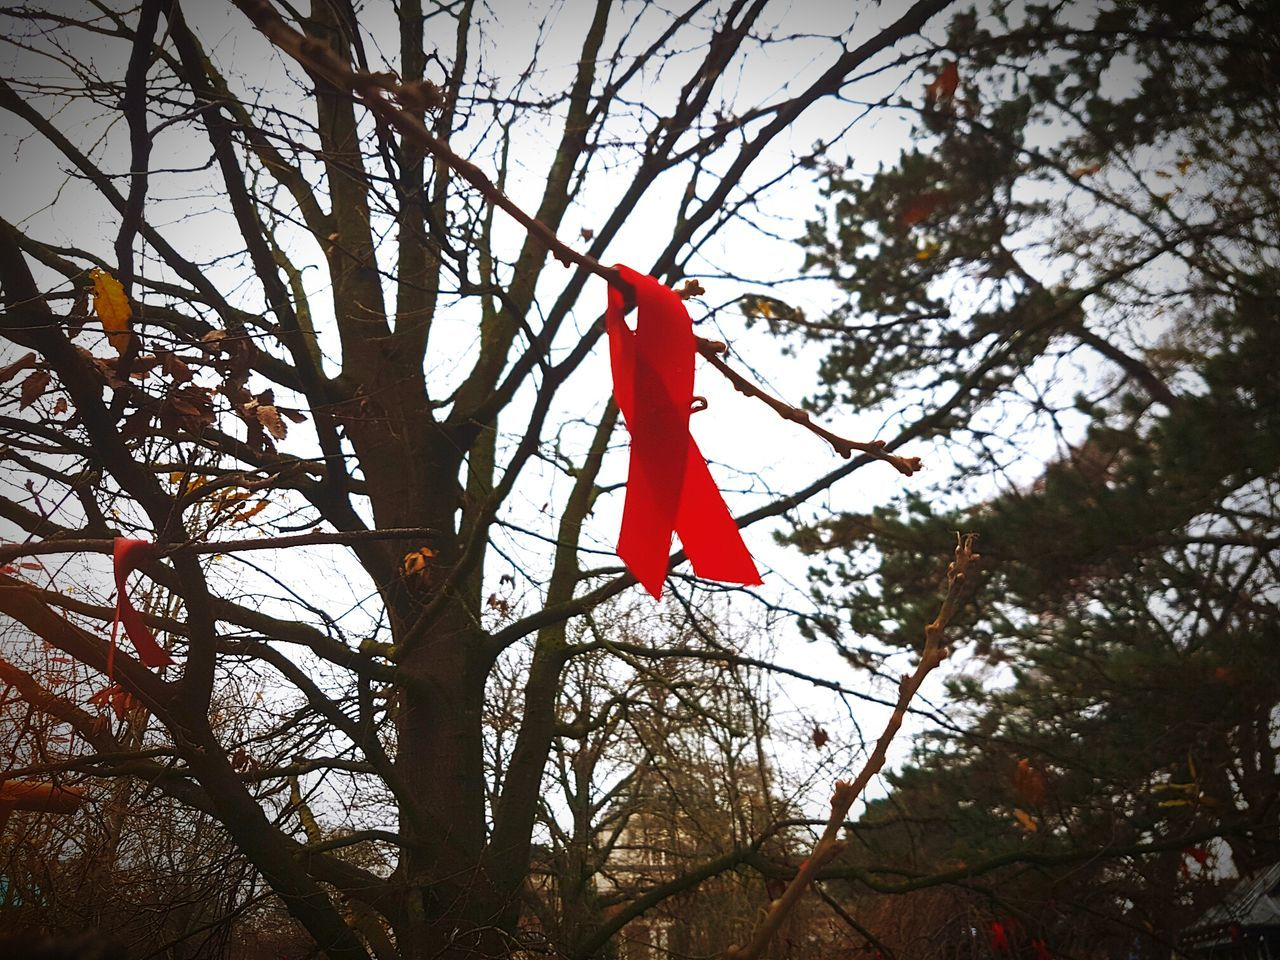 Arboreal messages Red Tree Sky Nature Outdoors Branch Beauty In Nature No People Day Ribbon Ribbons Red Ribbon Hiv HIV Awareness Gardens Park Cardiff Wales UK Cymru